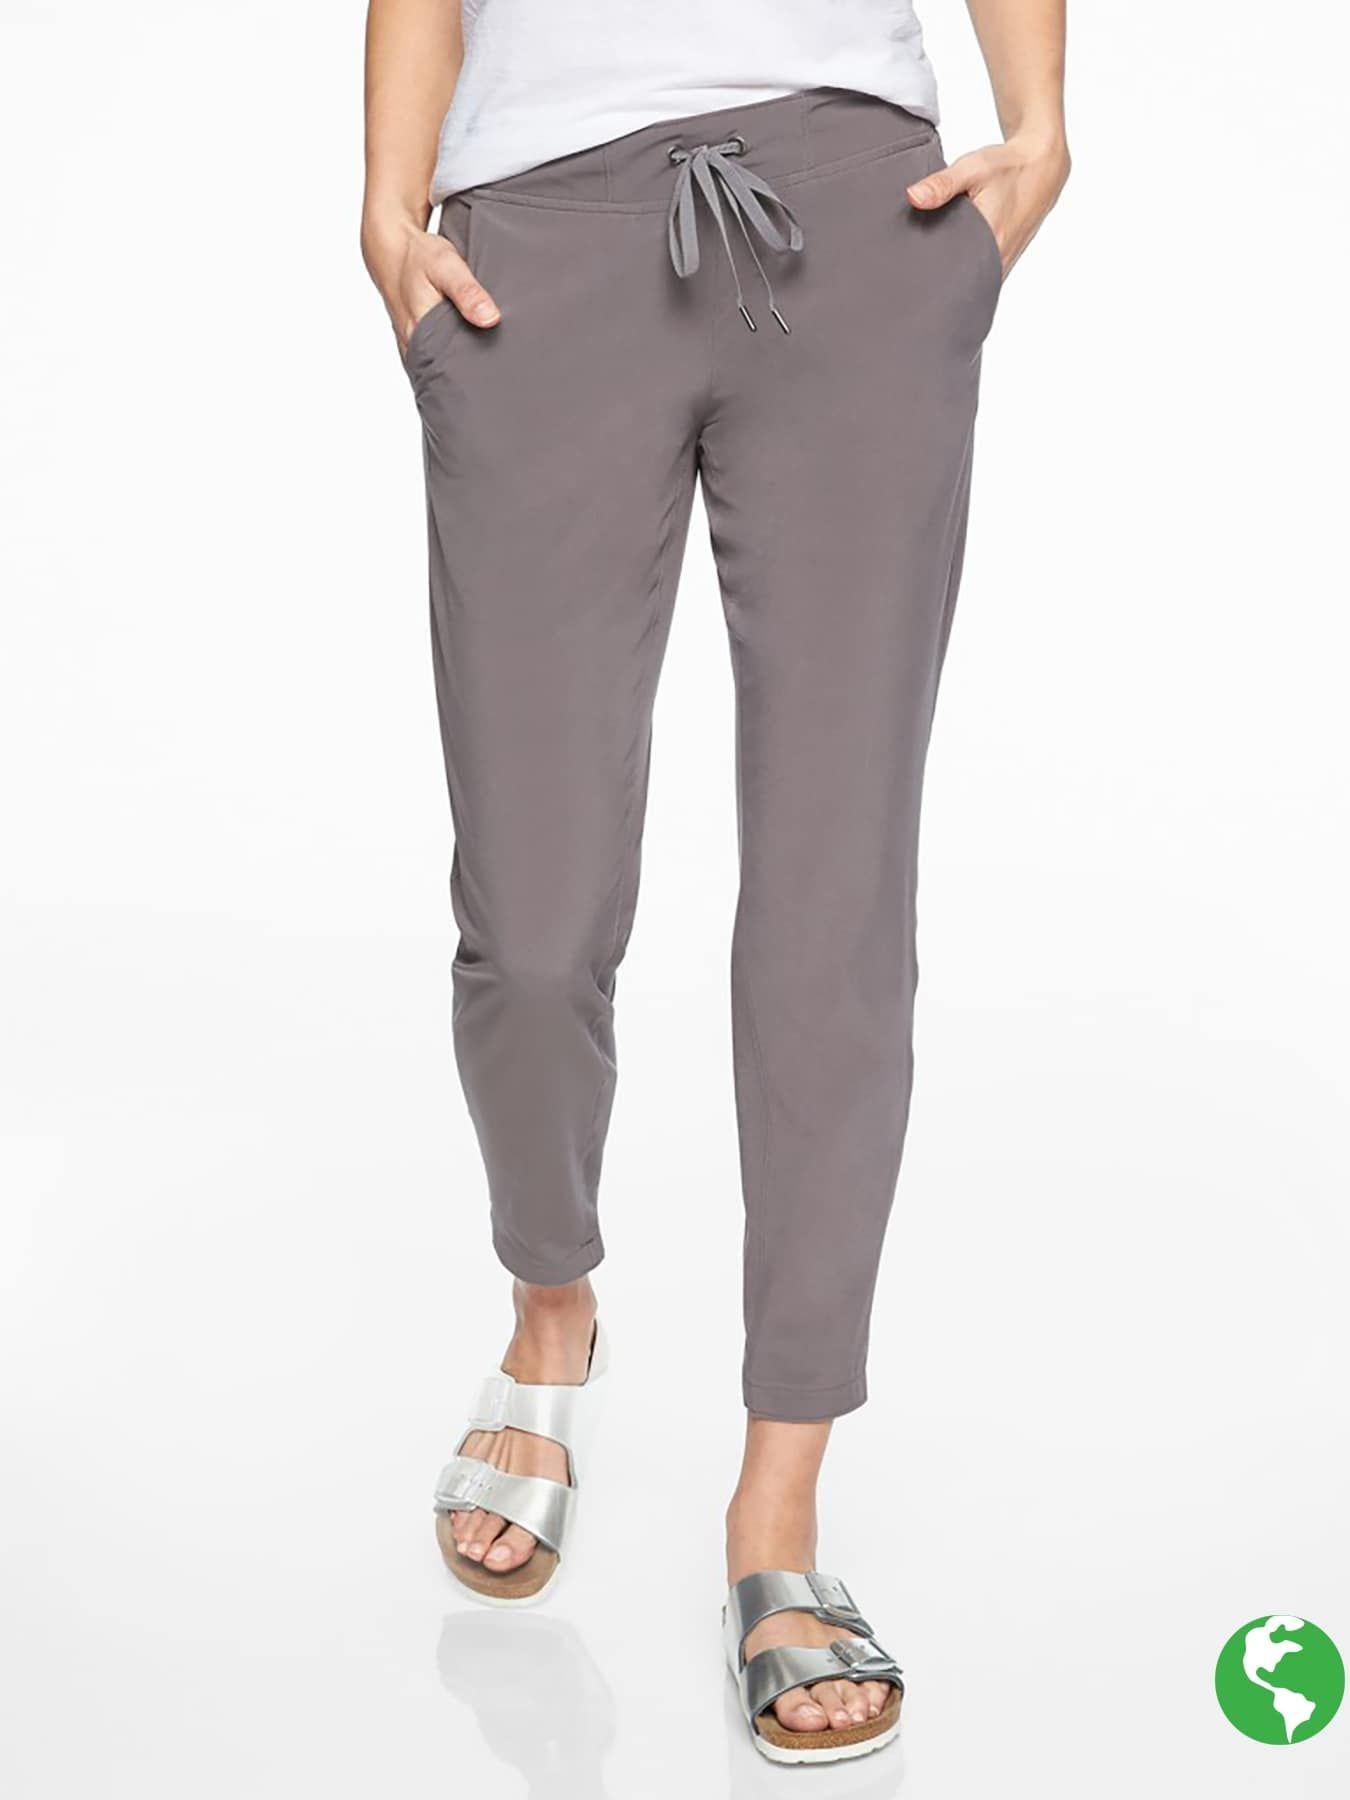 product photo Pants for women, Ankle pants, Clothes